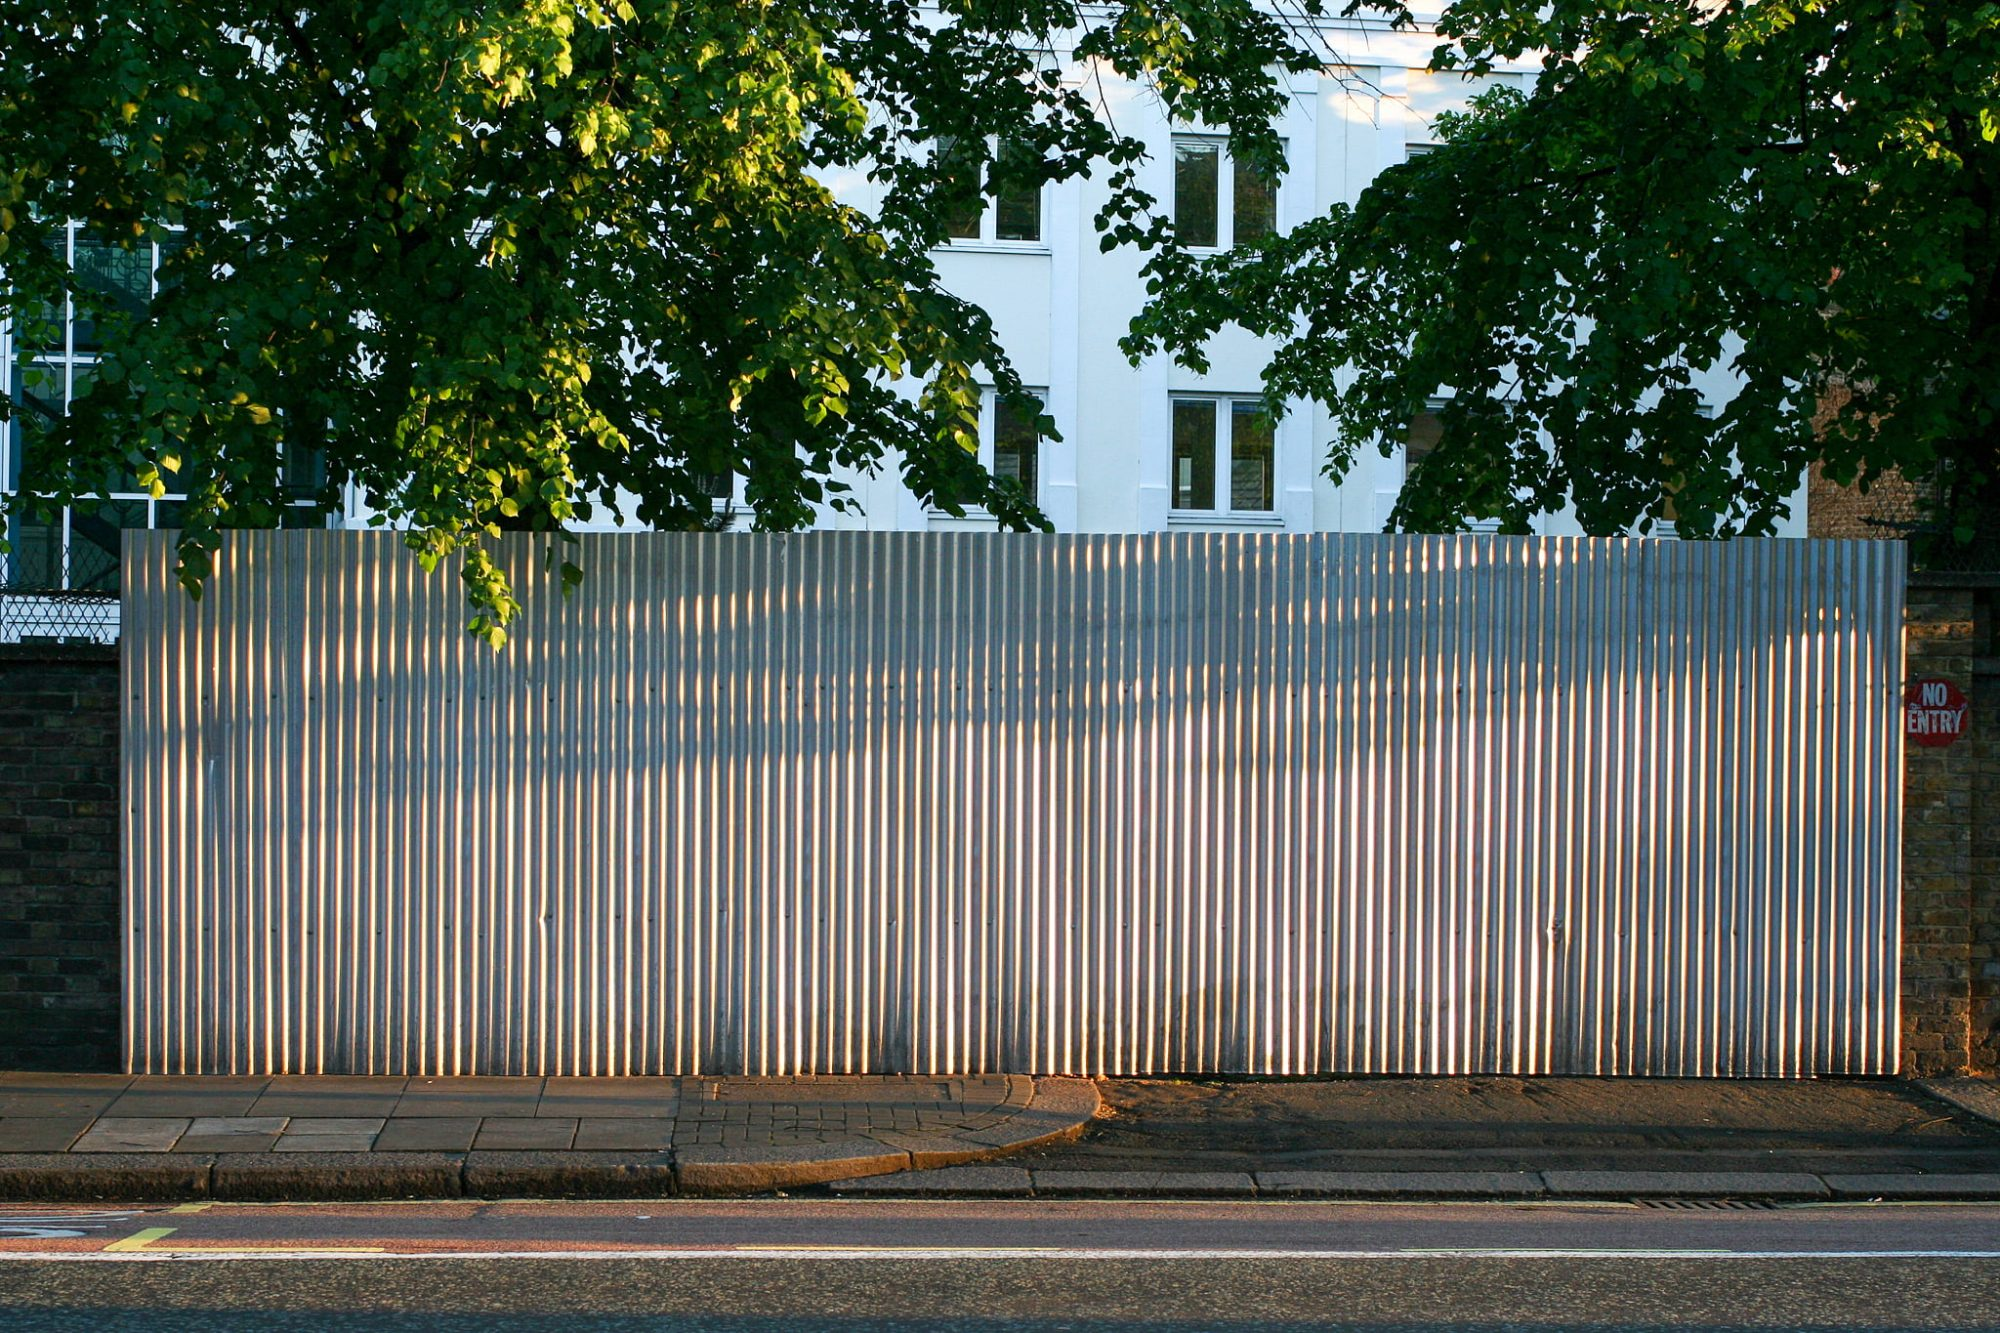 Parallel to the road, lining the pavement, is a tall corrugated sheet of metal standing on end. It fills the image. The road is just visible at the bottom of the image with a building and trees behind the sheet metal. A small no entry sign in red and white is on the wall to the right of the metal.